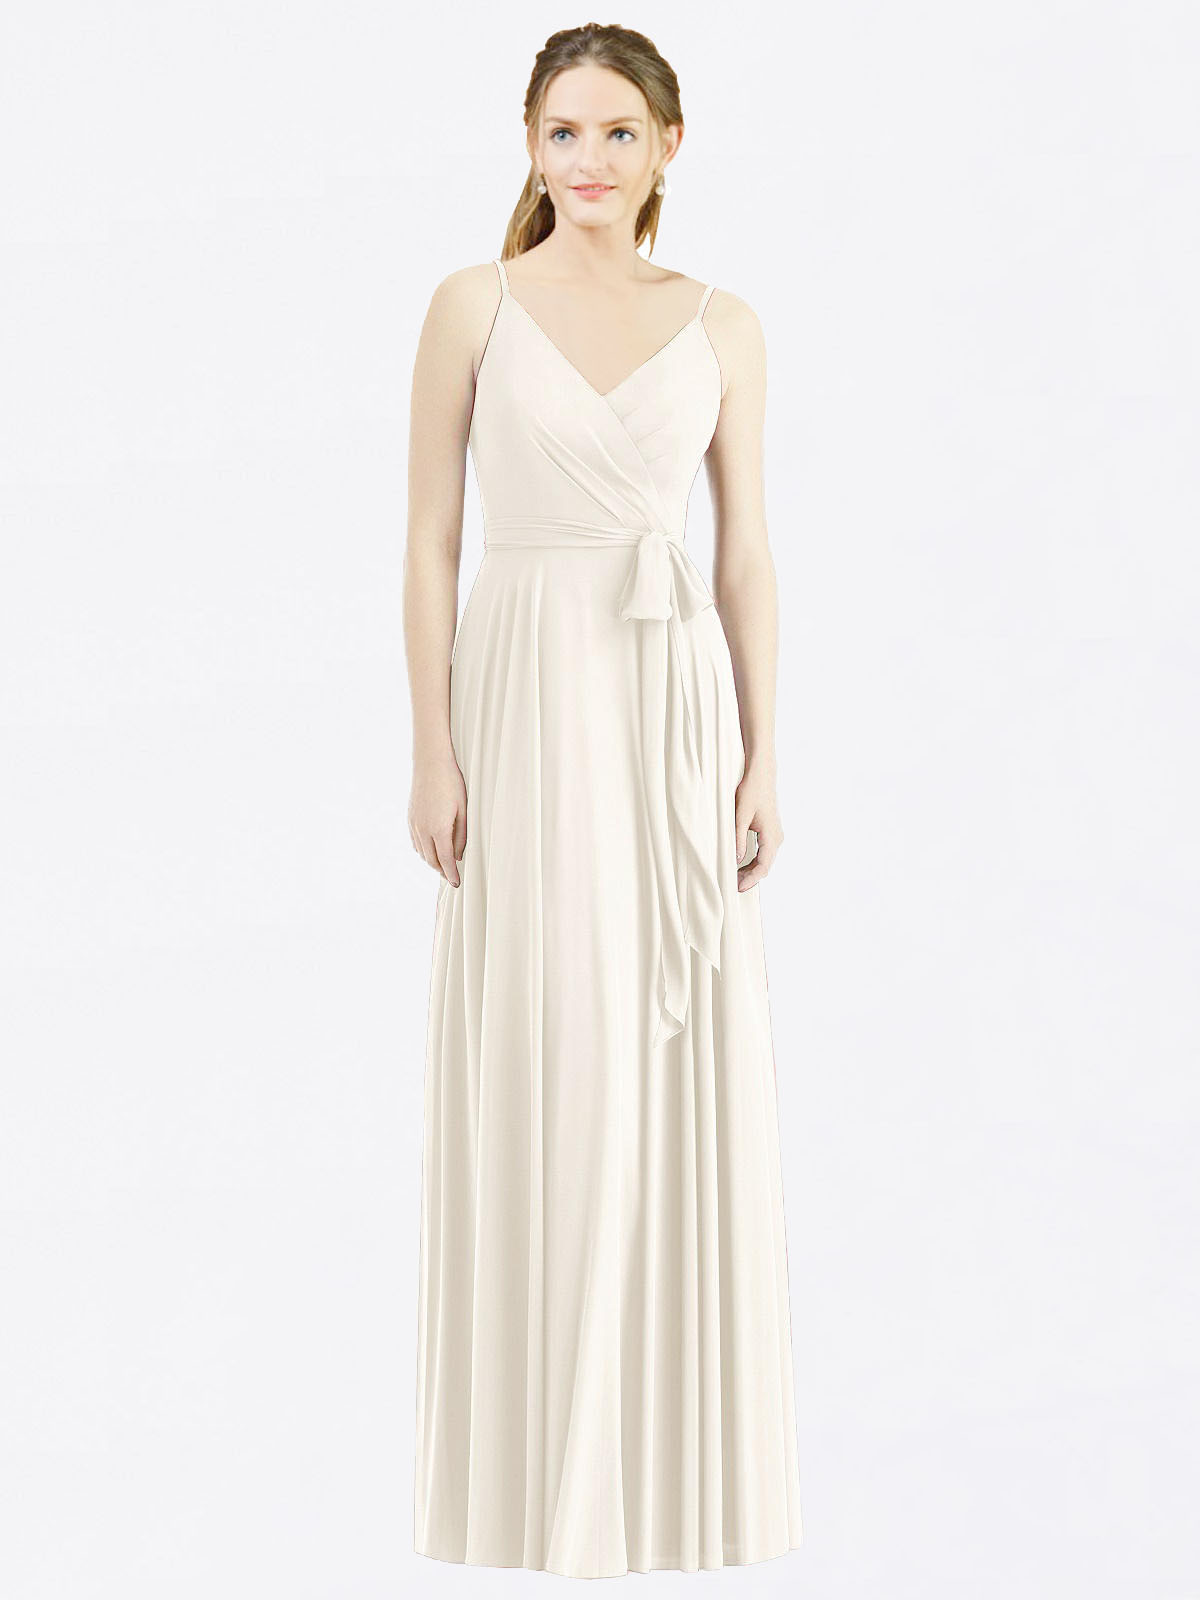 Long A-Line Spaghetti Straps, V-Neck Sleeveless Ivory Chiffon Bridesmaid Dress Madilyn